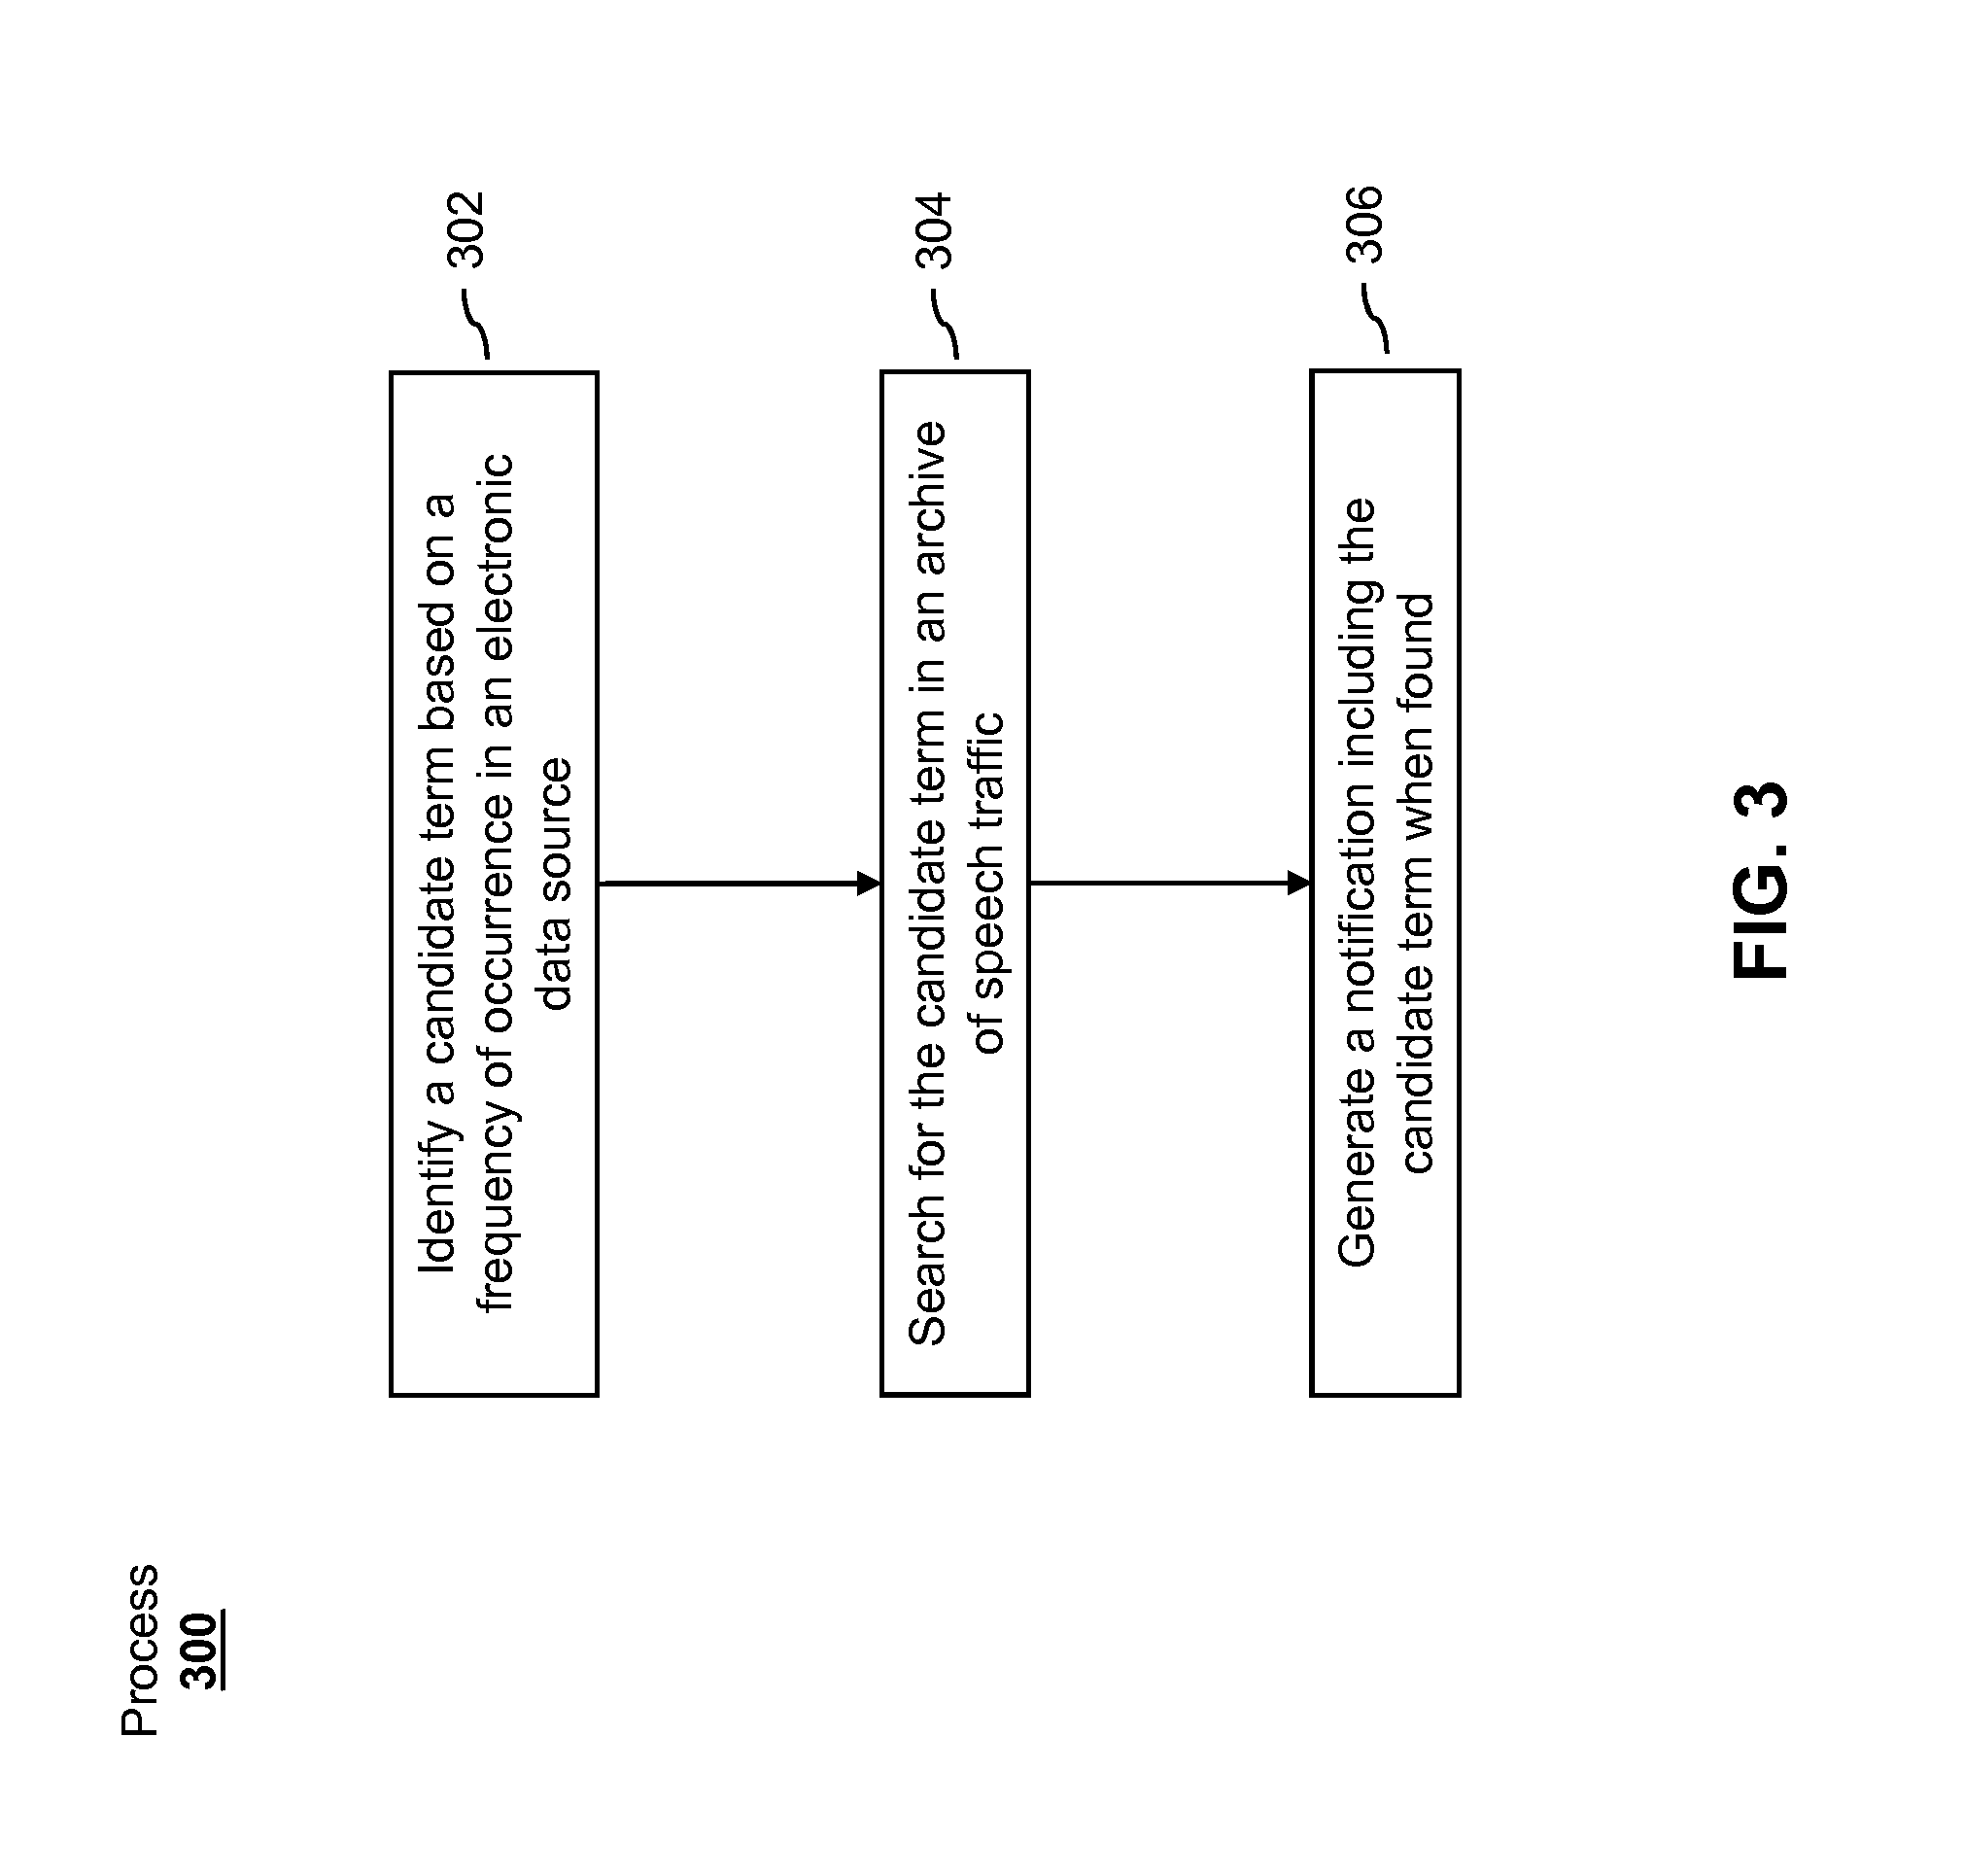 Us9818400b2 method and apparatus for discovering trending terms in us9818400b2 method and apparatus for discovering trending terms in speech requests google patents fandeluxe Image collections